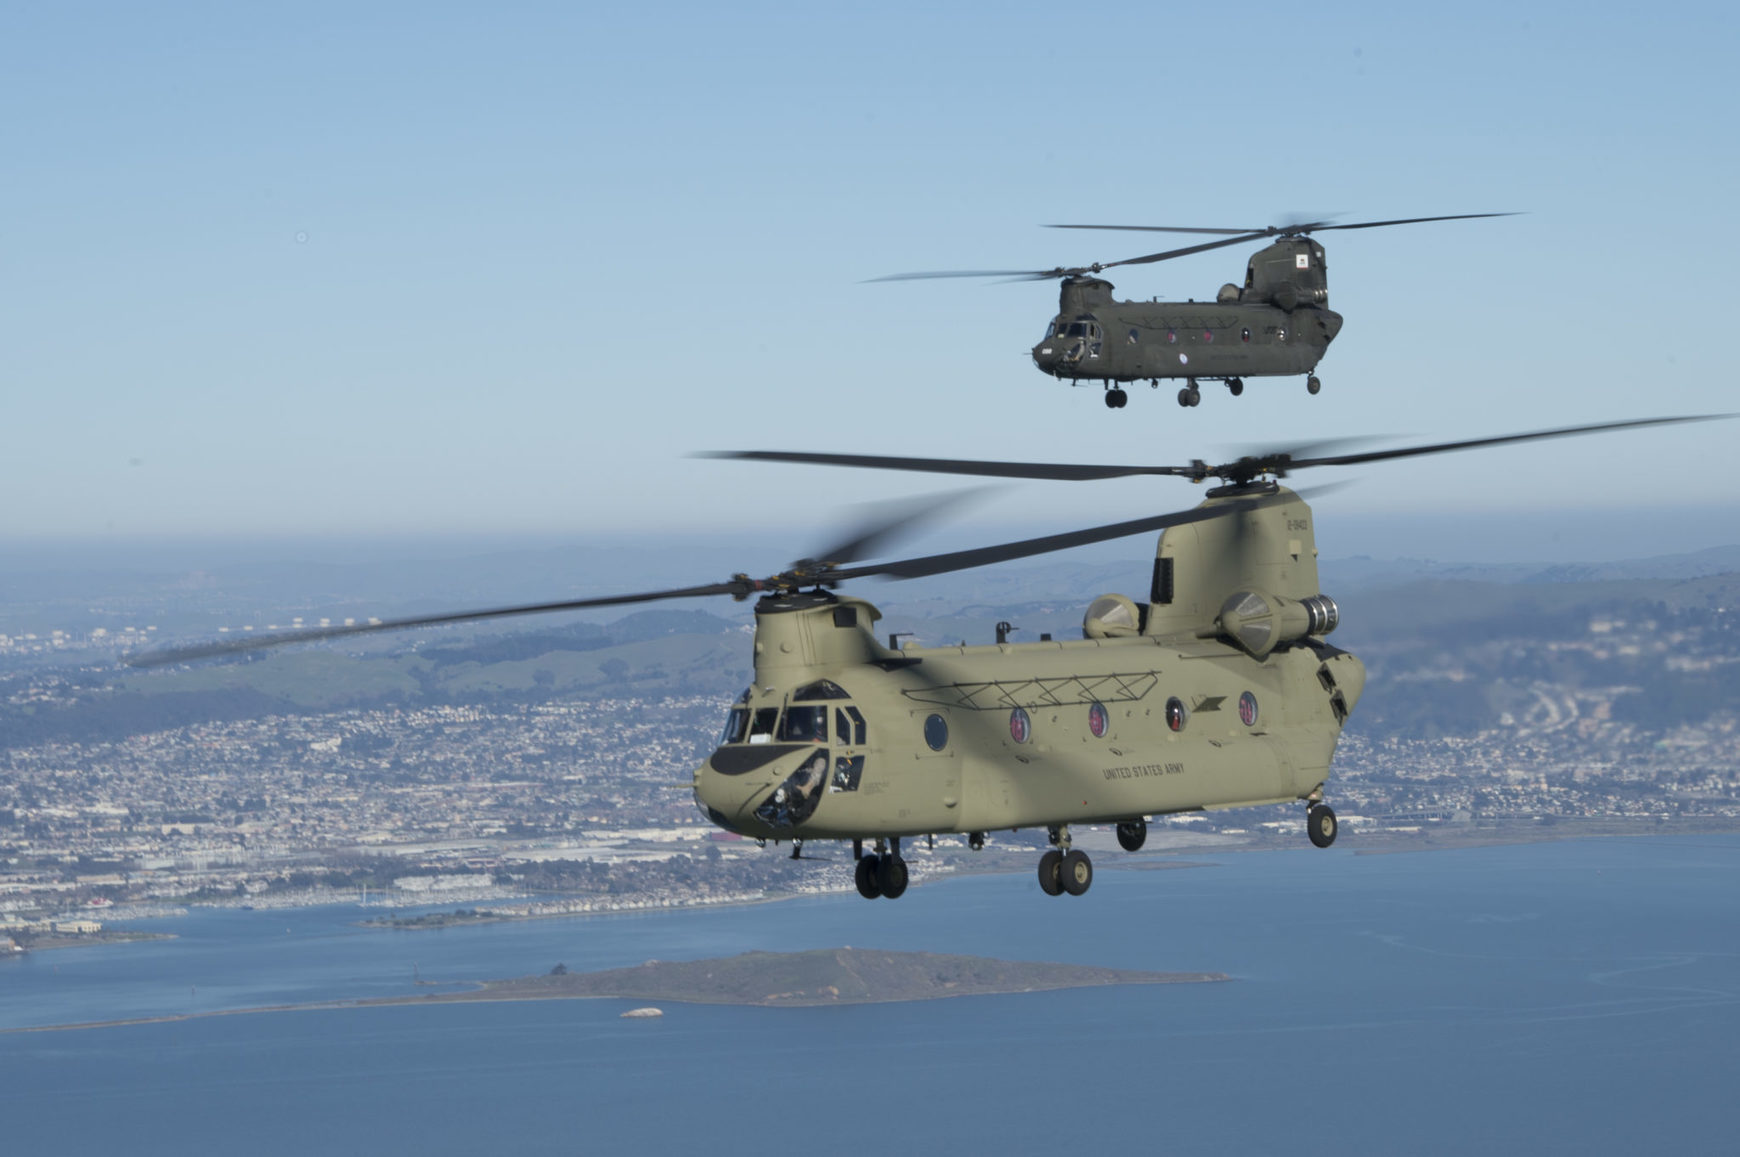 boeing chinook helicopter with Ch47 on Future Transport Helicopter Concept 2F3XC5HYAT6 further 709548 in addition Ch 47f Chinook moreover 342 moreover Is Ch 53k Worth Price When We Could Buy.